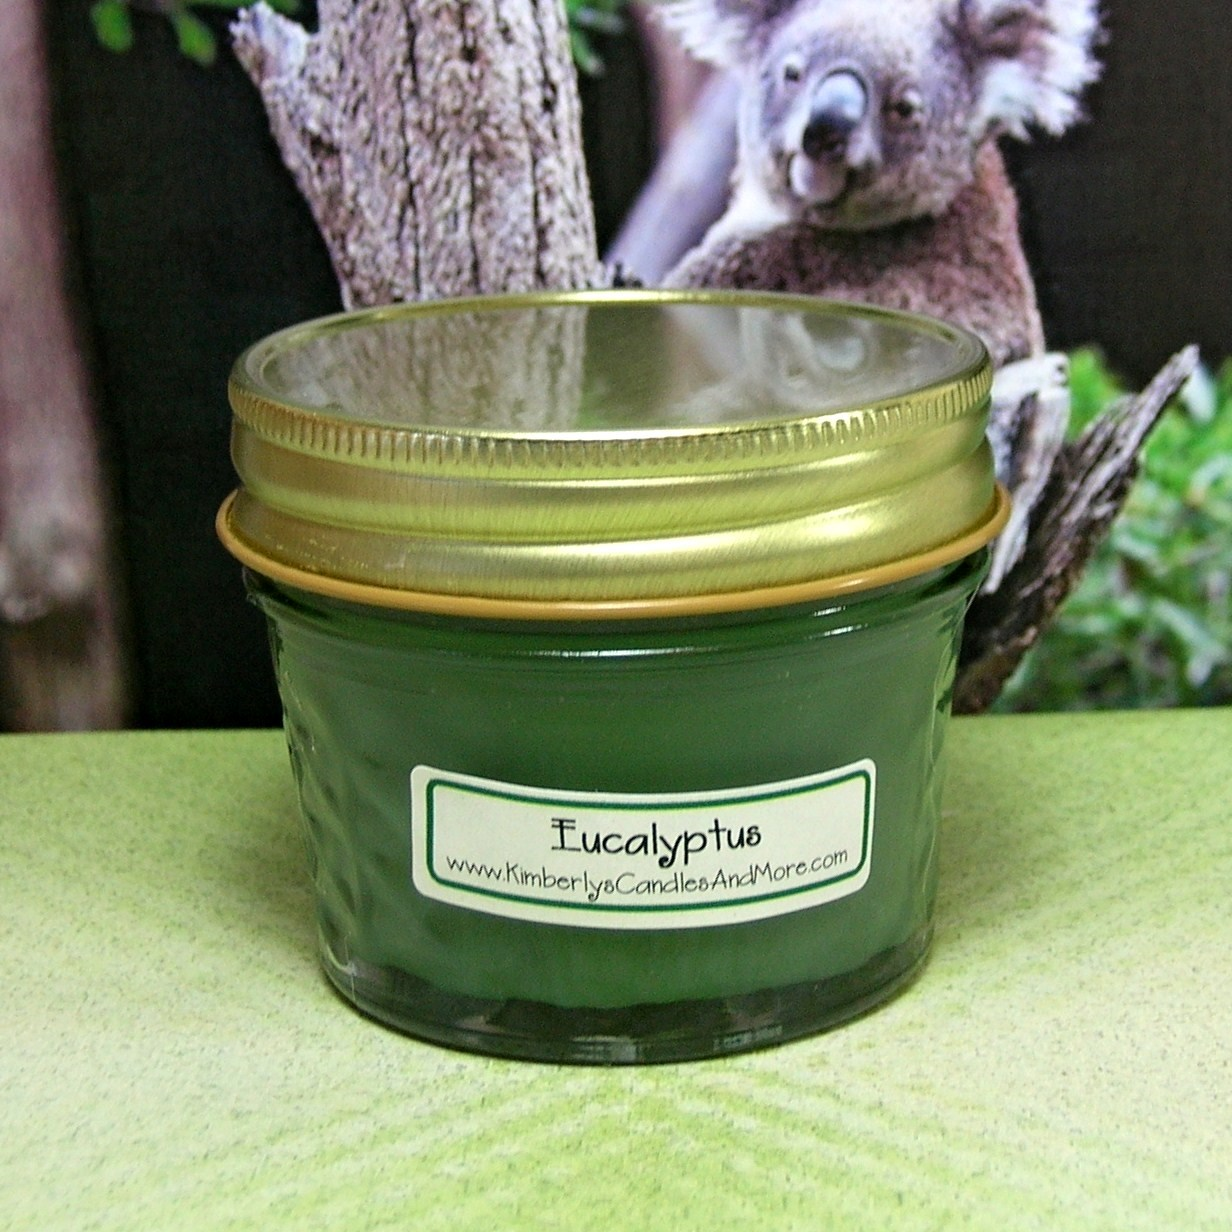 Eucalyptus PURE SOY  4 oz Jelly Jar Candle